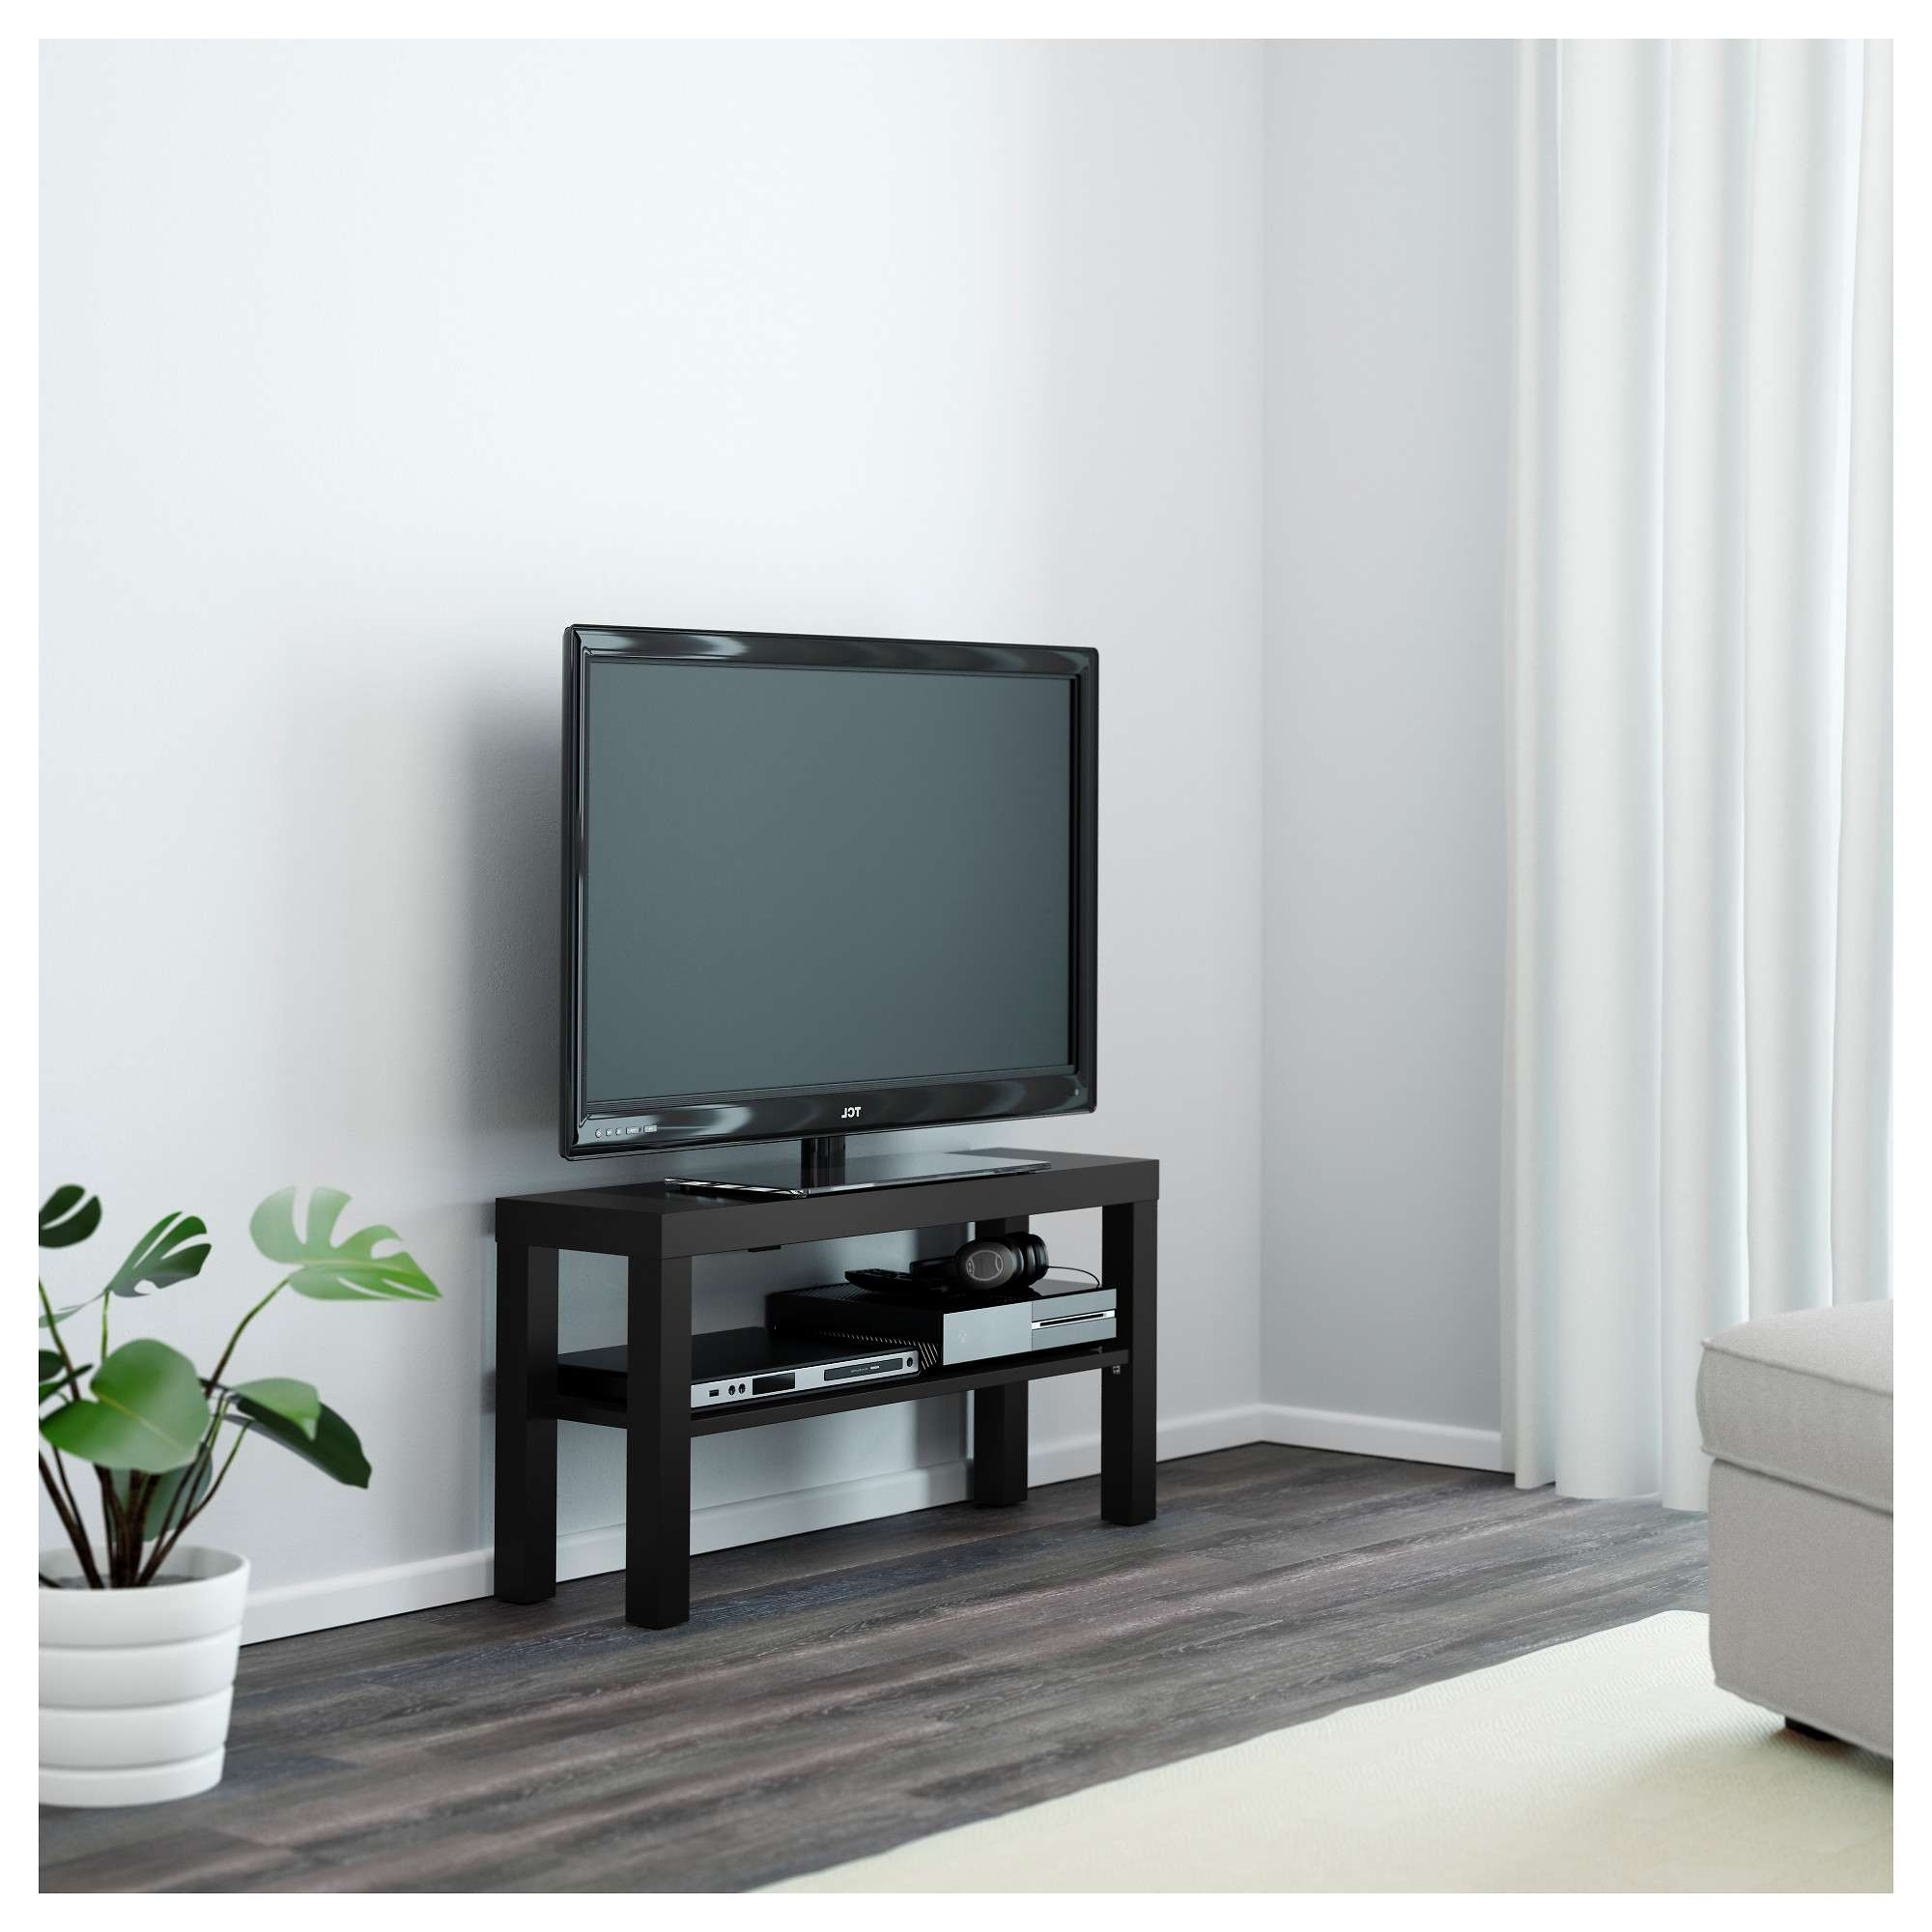 Lack Tv Bench Black 90X26 Cm – Ikea Inside Bench Tv Stands (View 8 of 15)